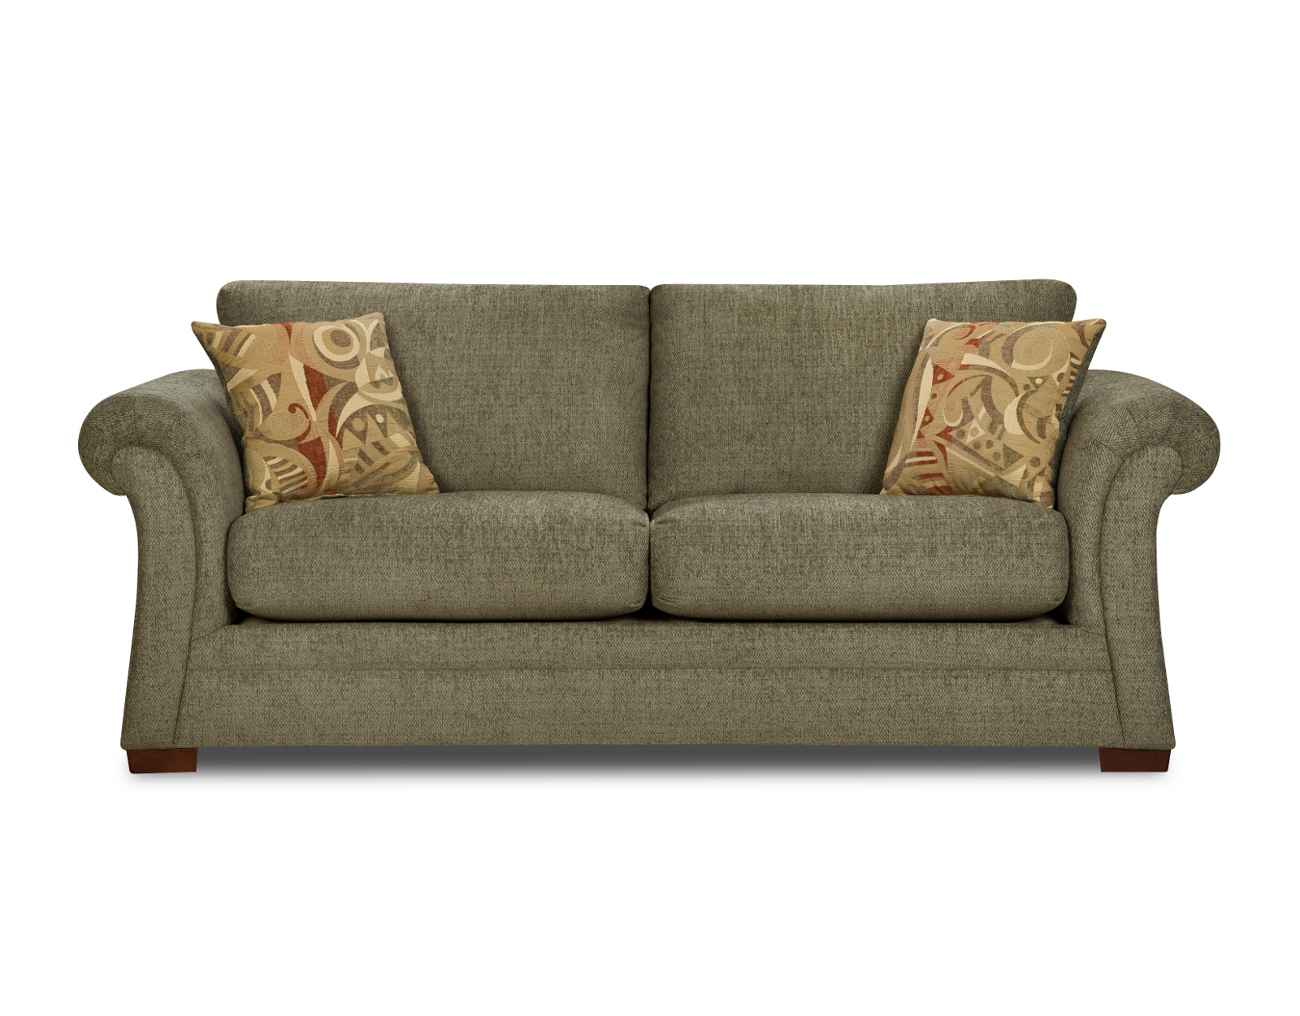 Cheap chicago furniture stores Discount sofa loveseat